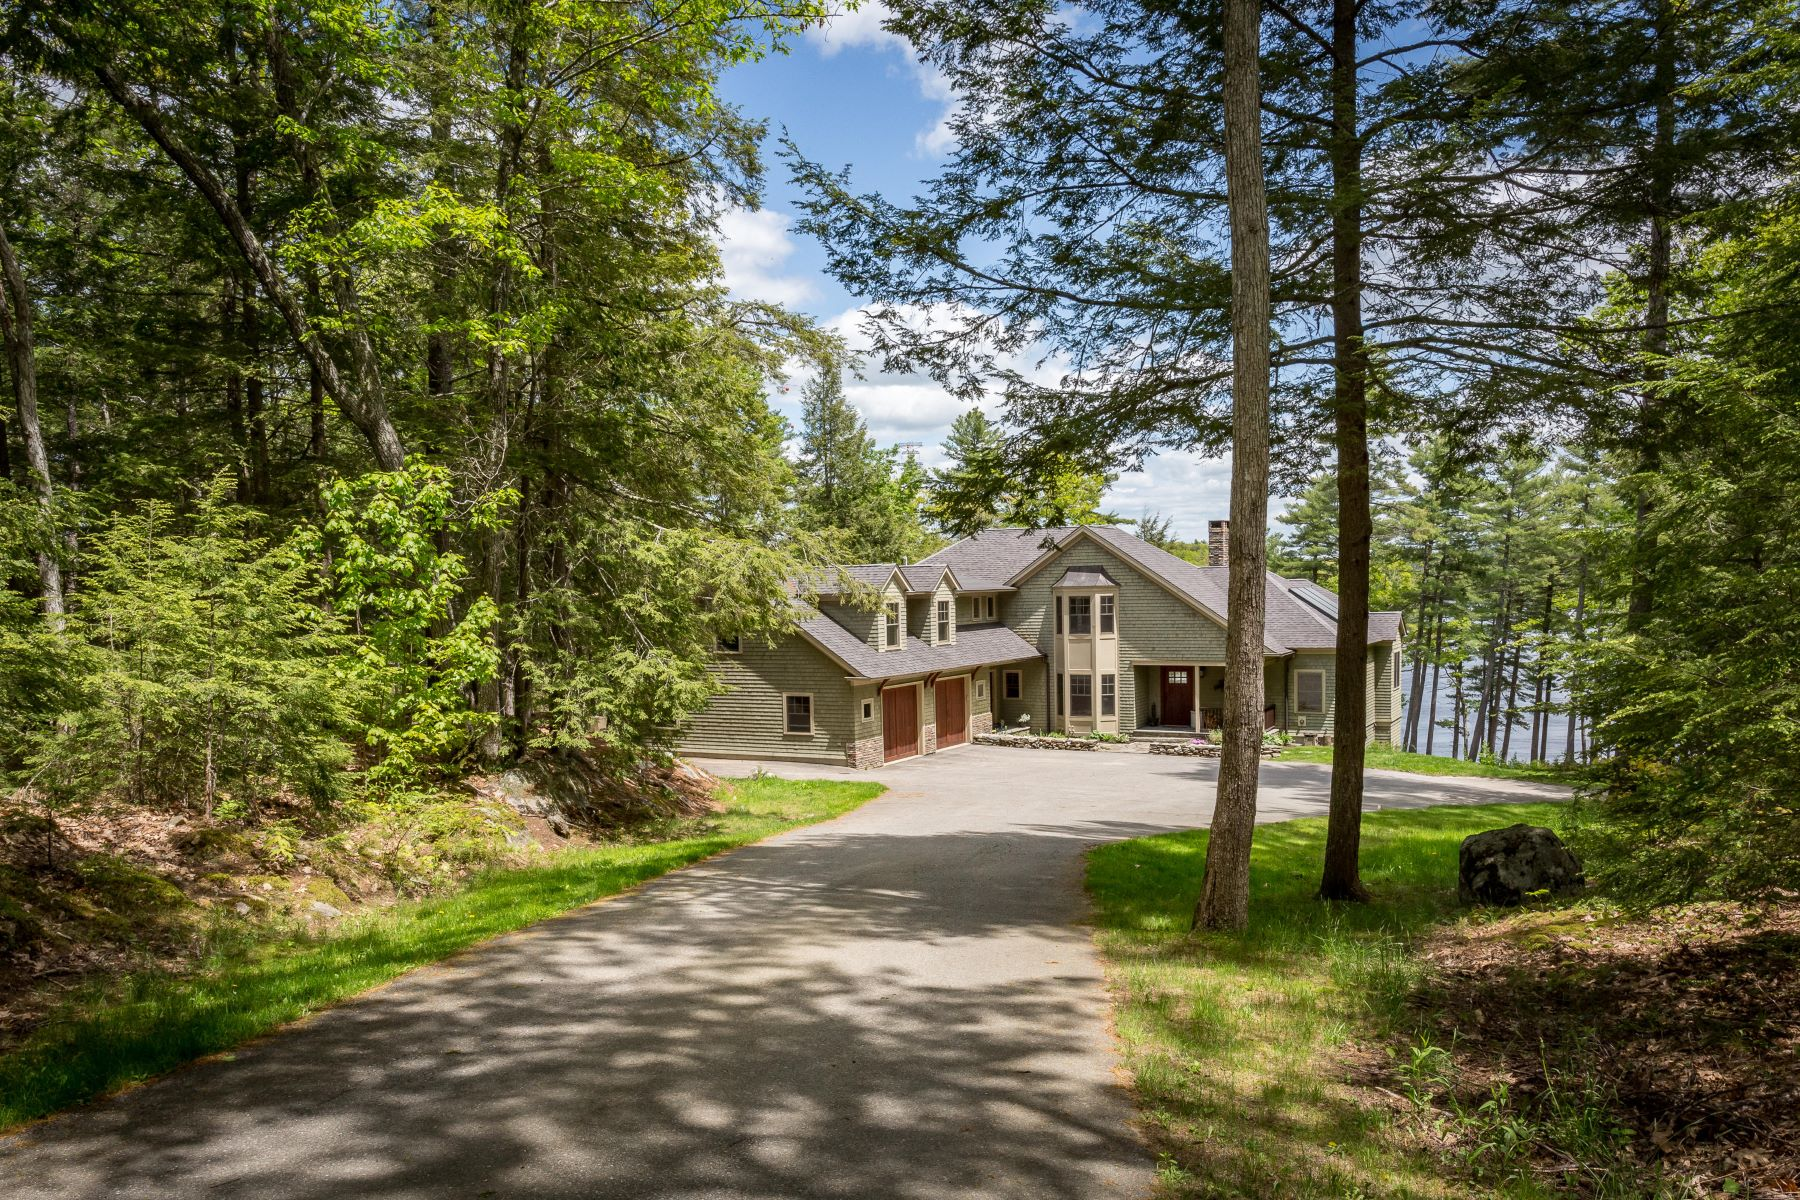 Single Family Homes for Sale at Bath, Maine 04530 United States